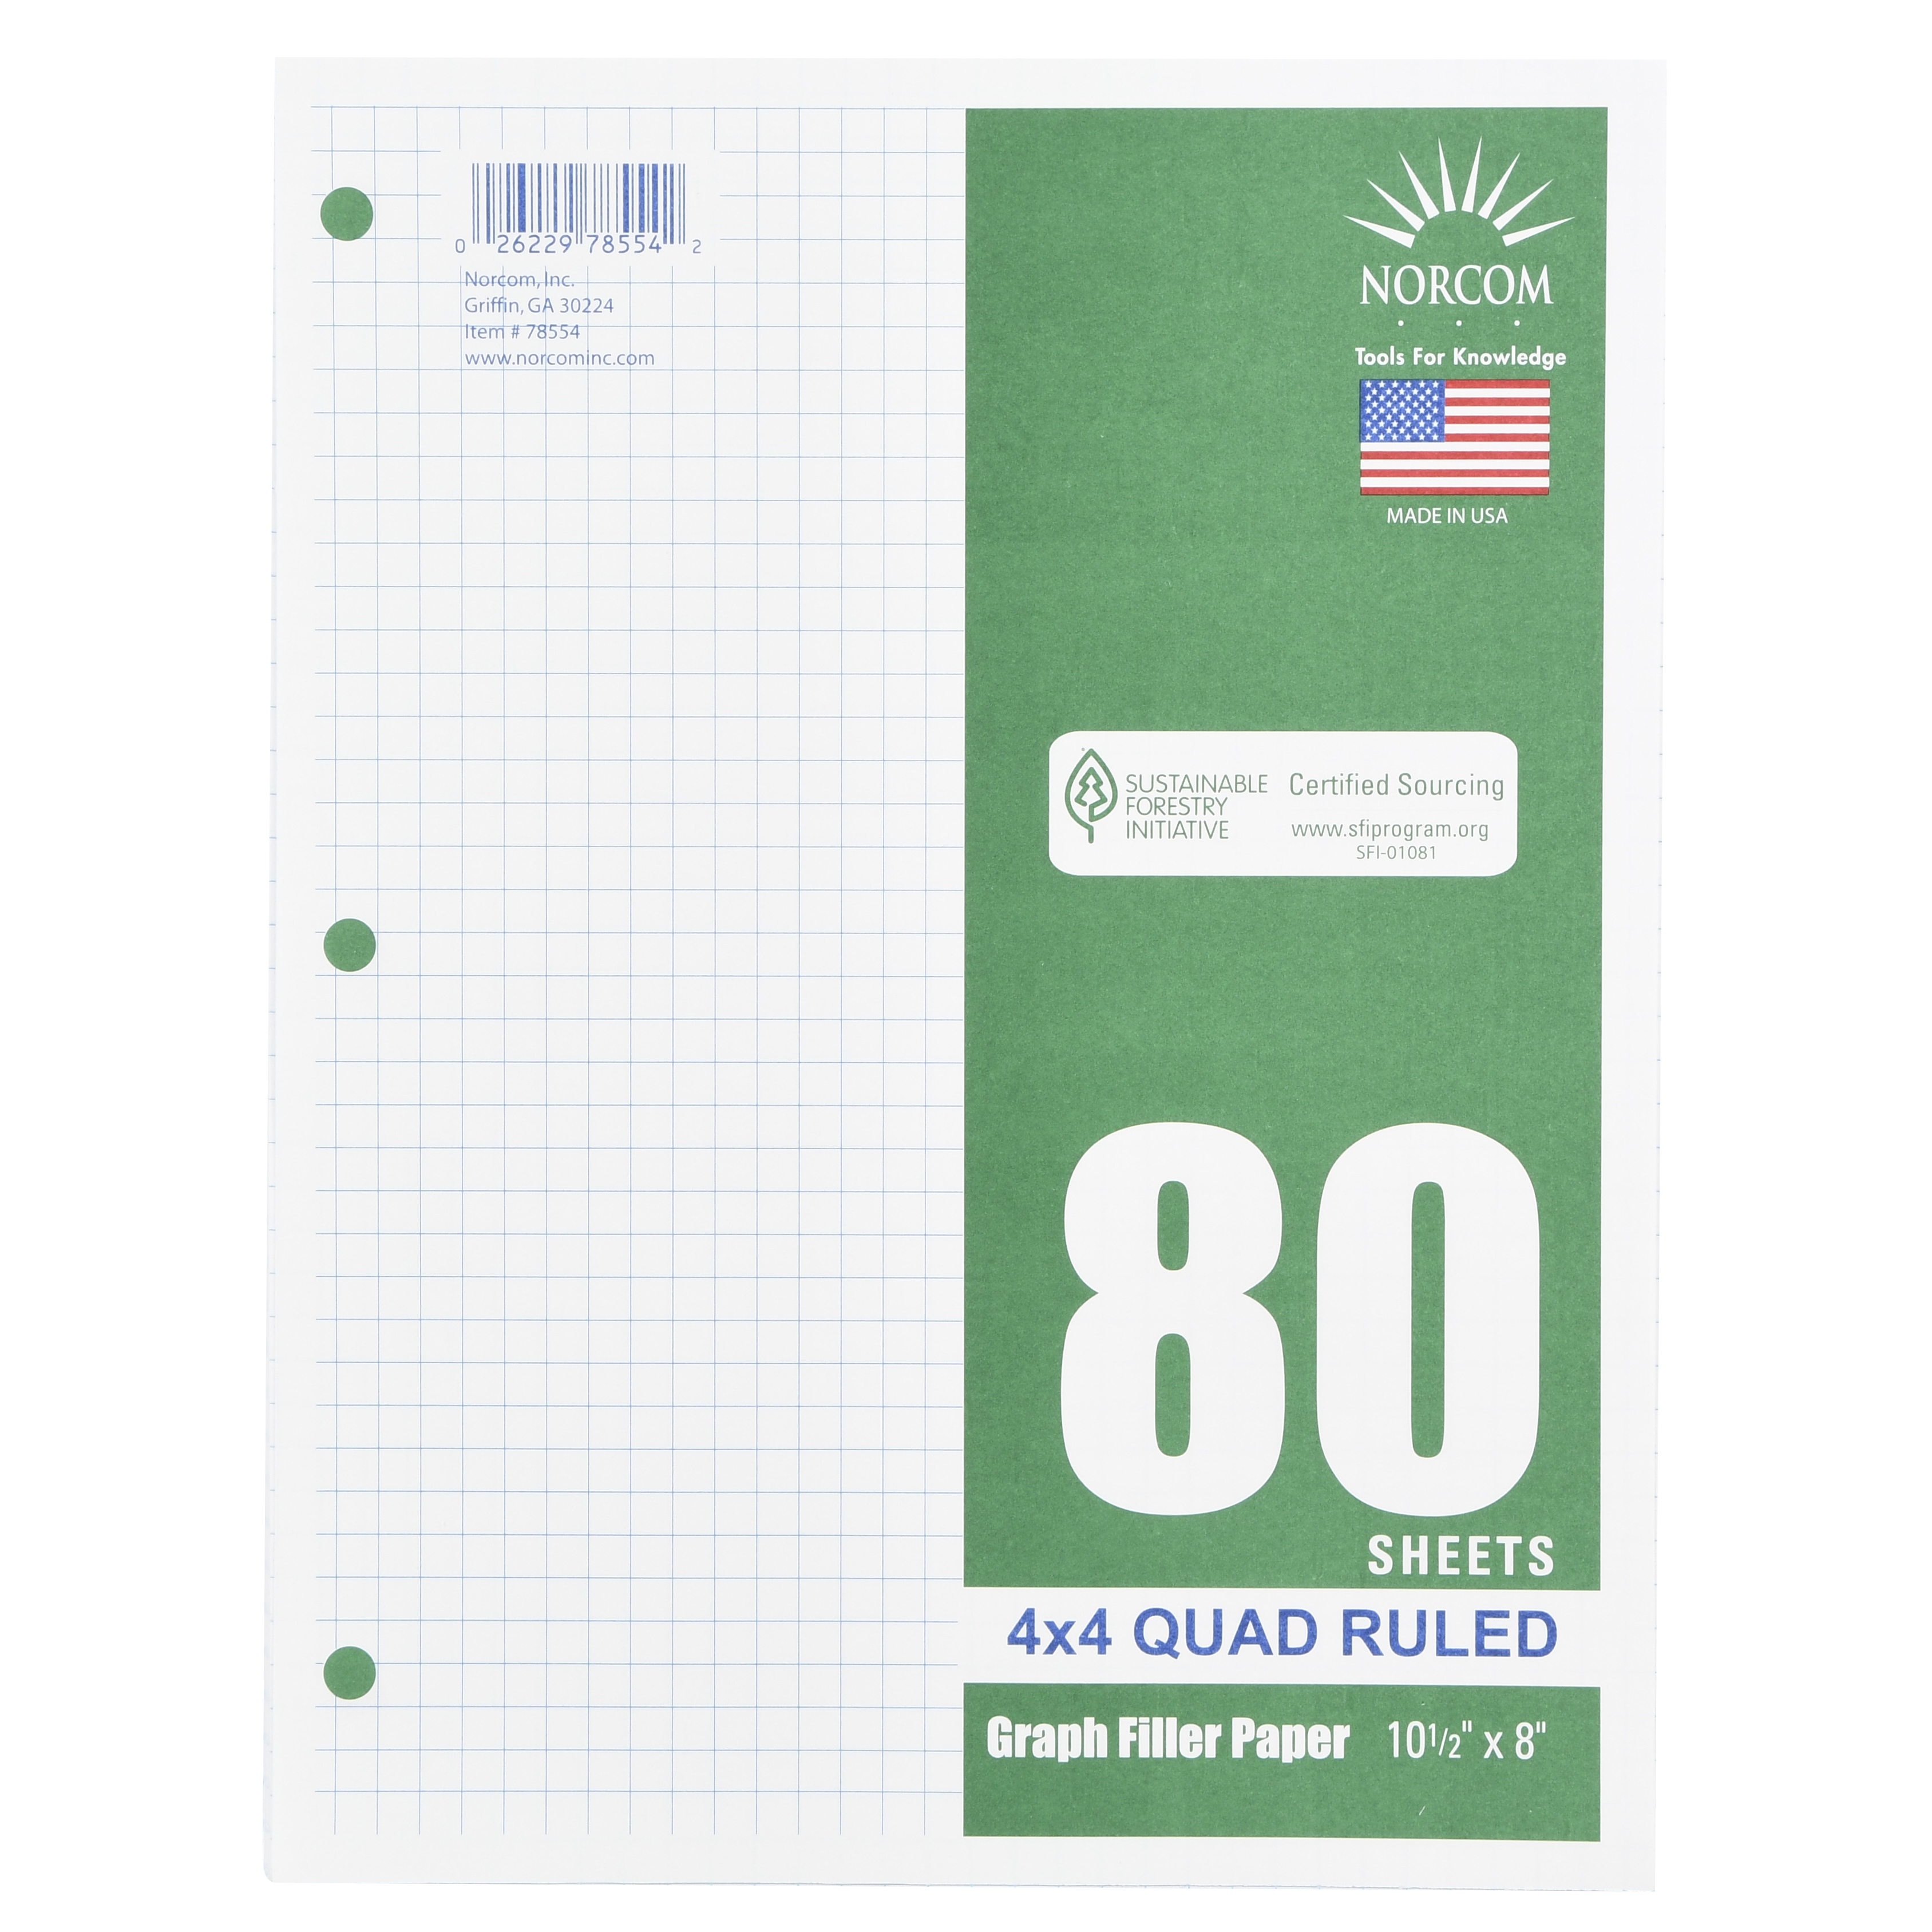 "(4 Pack) Norcom 80 Sheets 4x4 Graph Filler Paper, 10.5"" x 8"""